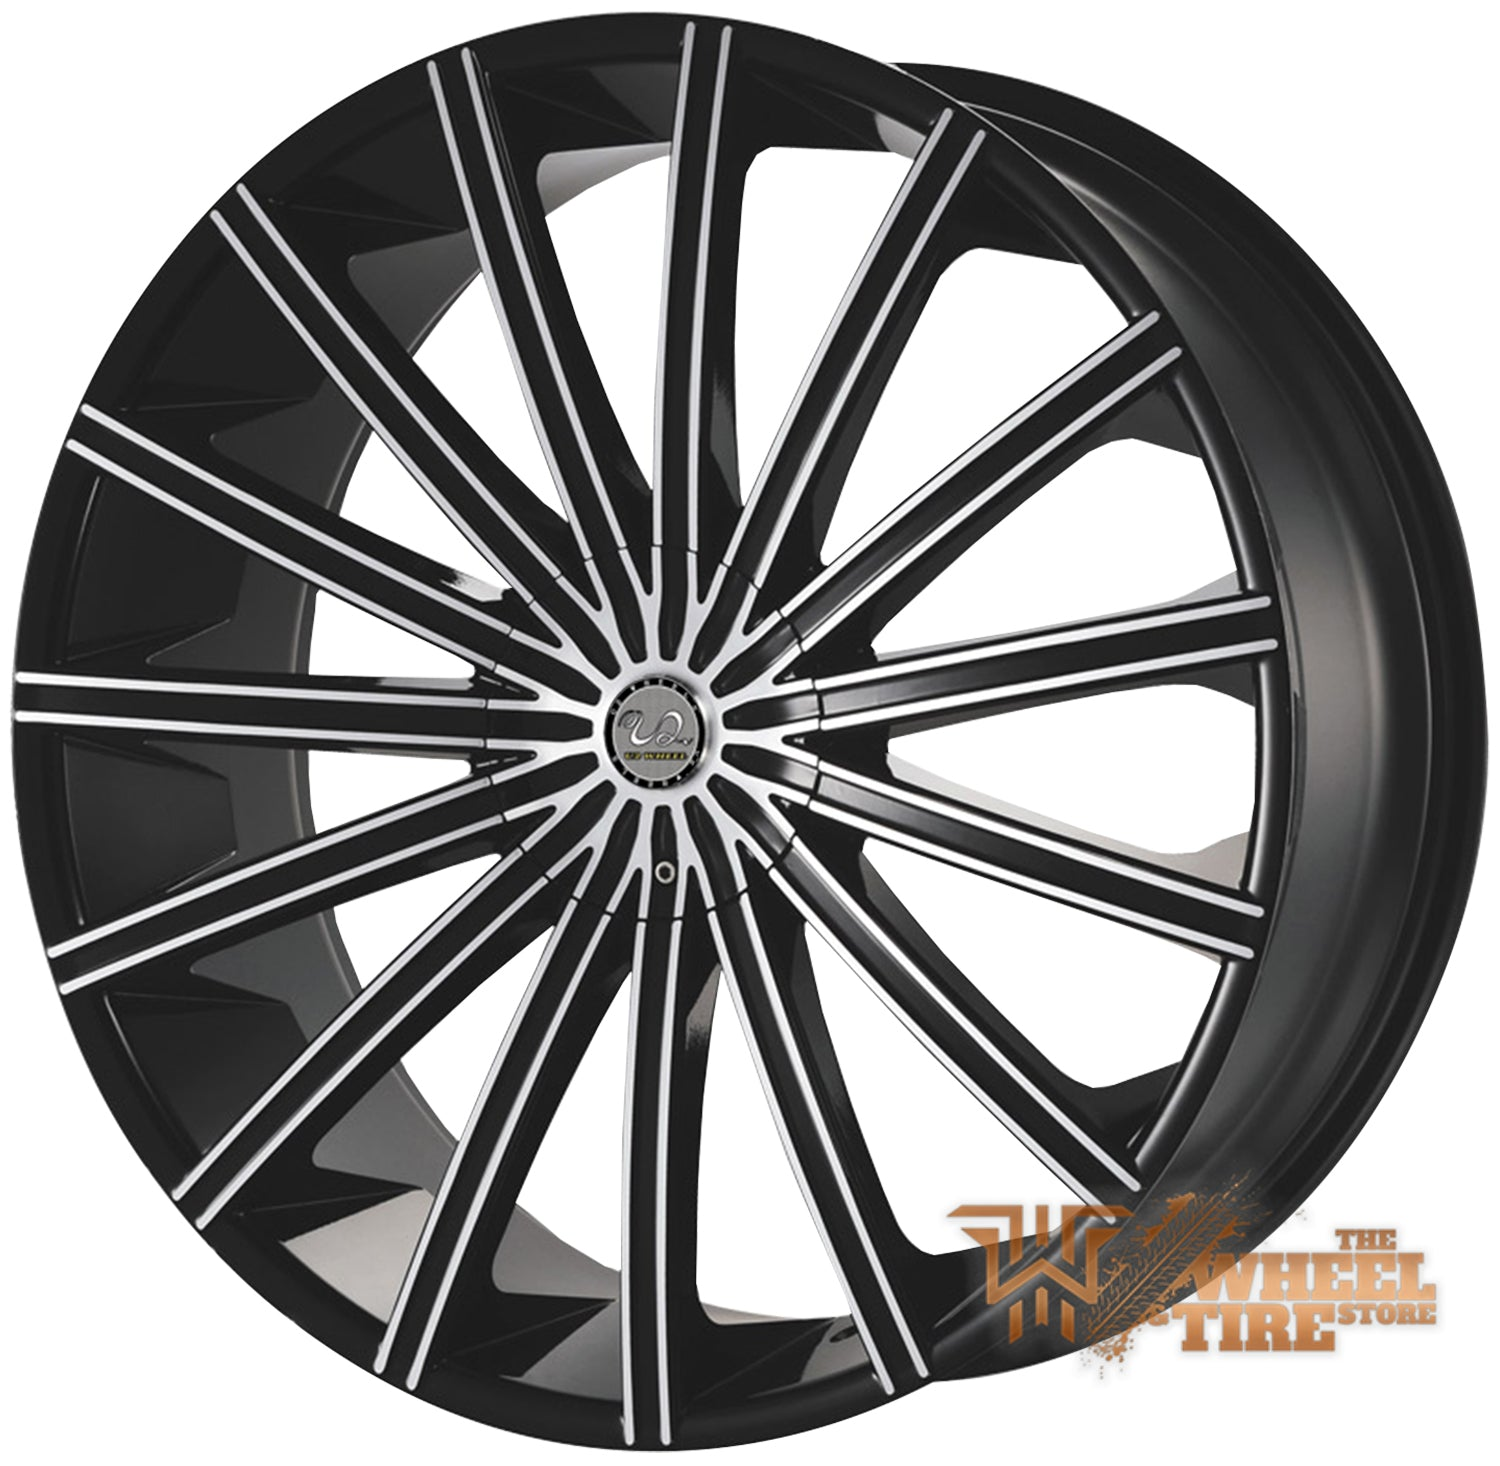 U2 U2-16 Wheel in Black Milled (Set of 4)